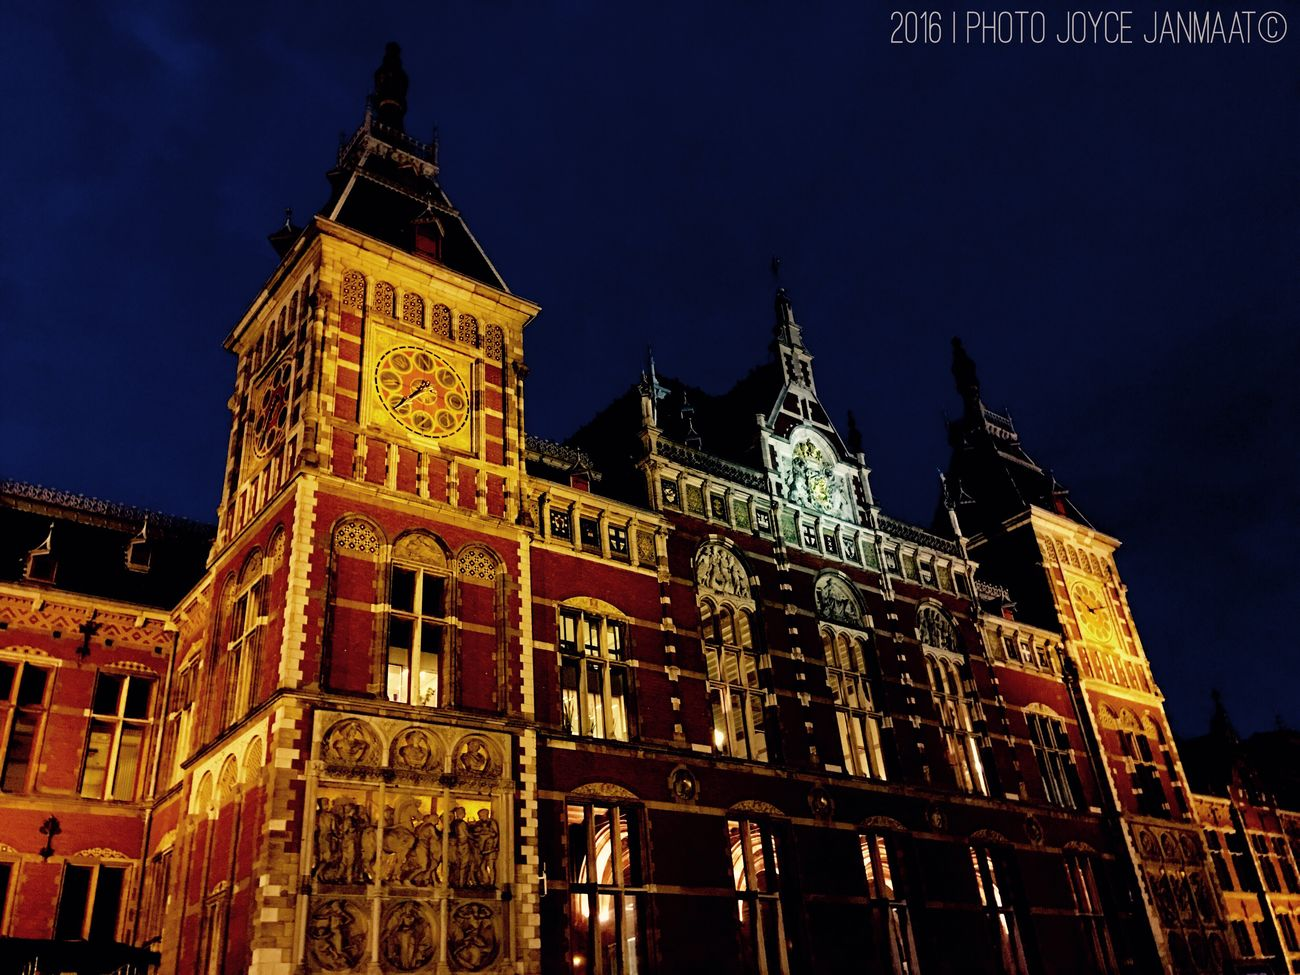 The City Light Amsterdam Amsterdamcity Amsterdam Centraal Amsterdamthroughmycamera Holland Amsterdam City Thenetherlands Netherlands Nederland Amsterdam.nl Amsterdamlife Amsterdam By Night Train Station Dutch Dutch Cities Architecture_collection Architecture Building Exterior Night City Architecture Holland❤ EyEmNewHere